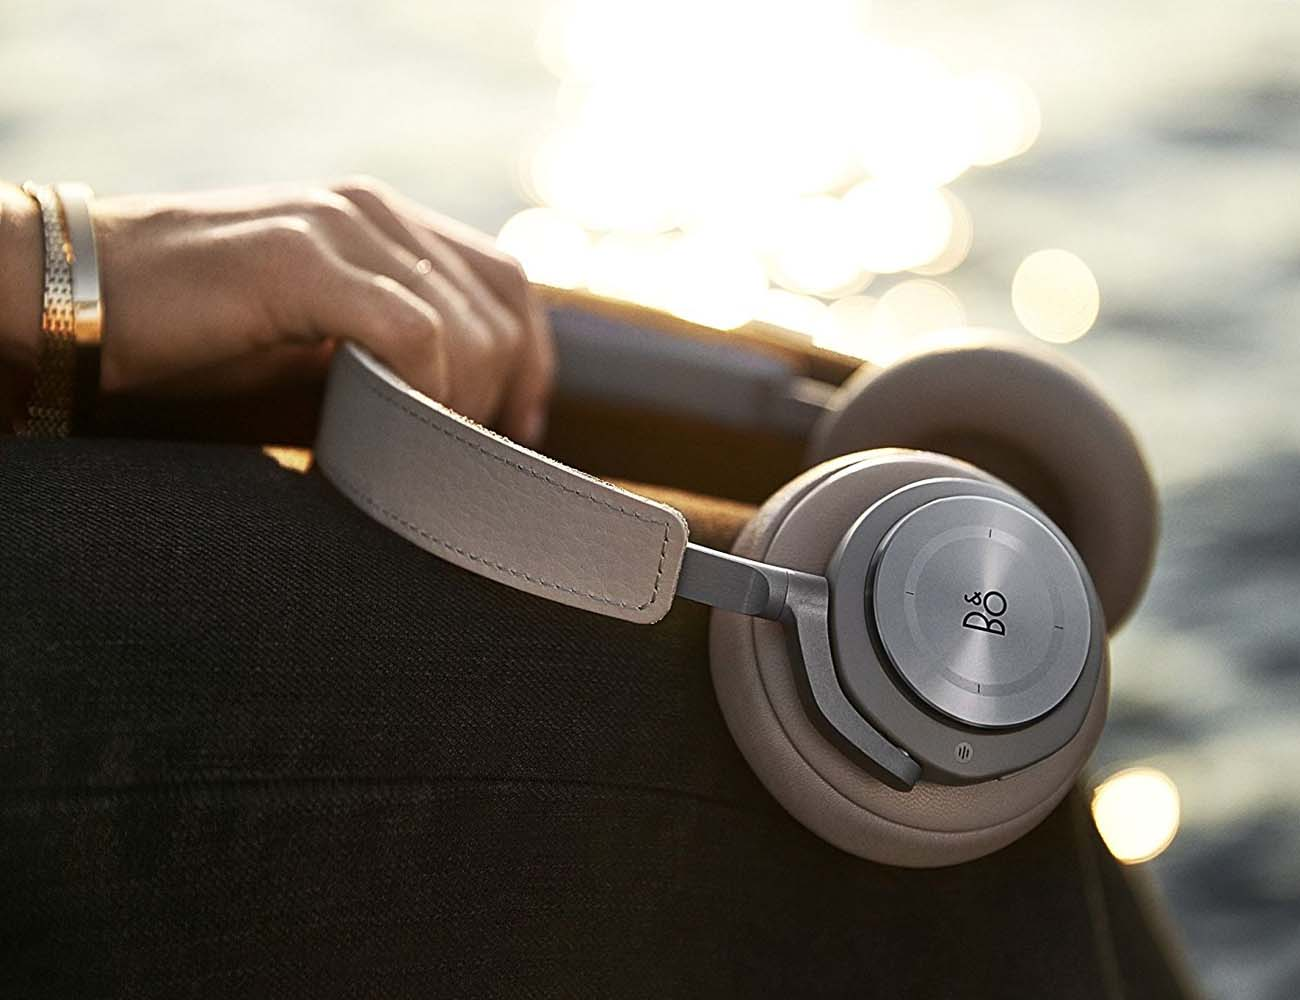 Bang & Olufsen H8 Wireless Headphones With Active Noise Cancellation